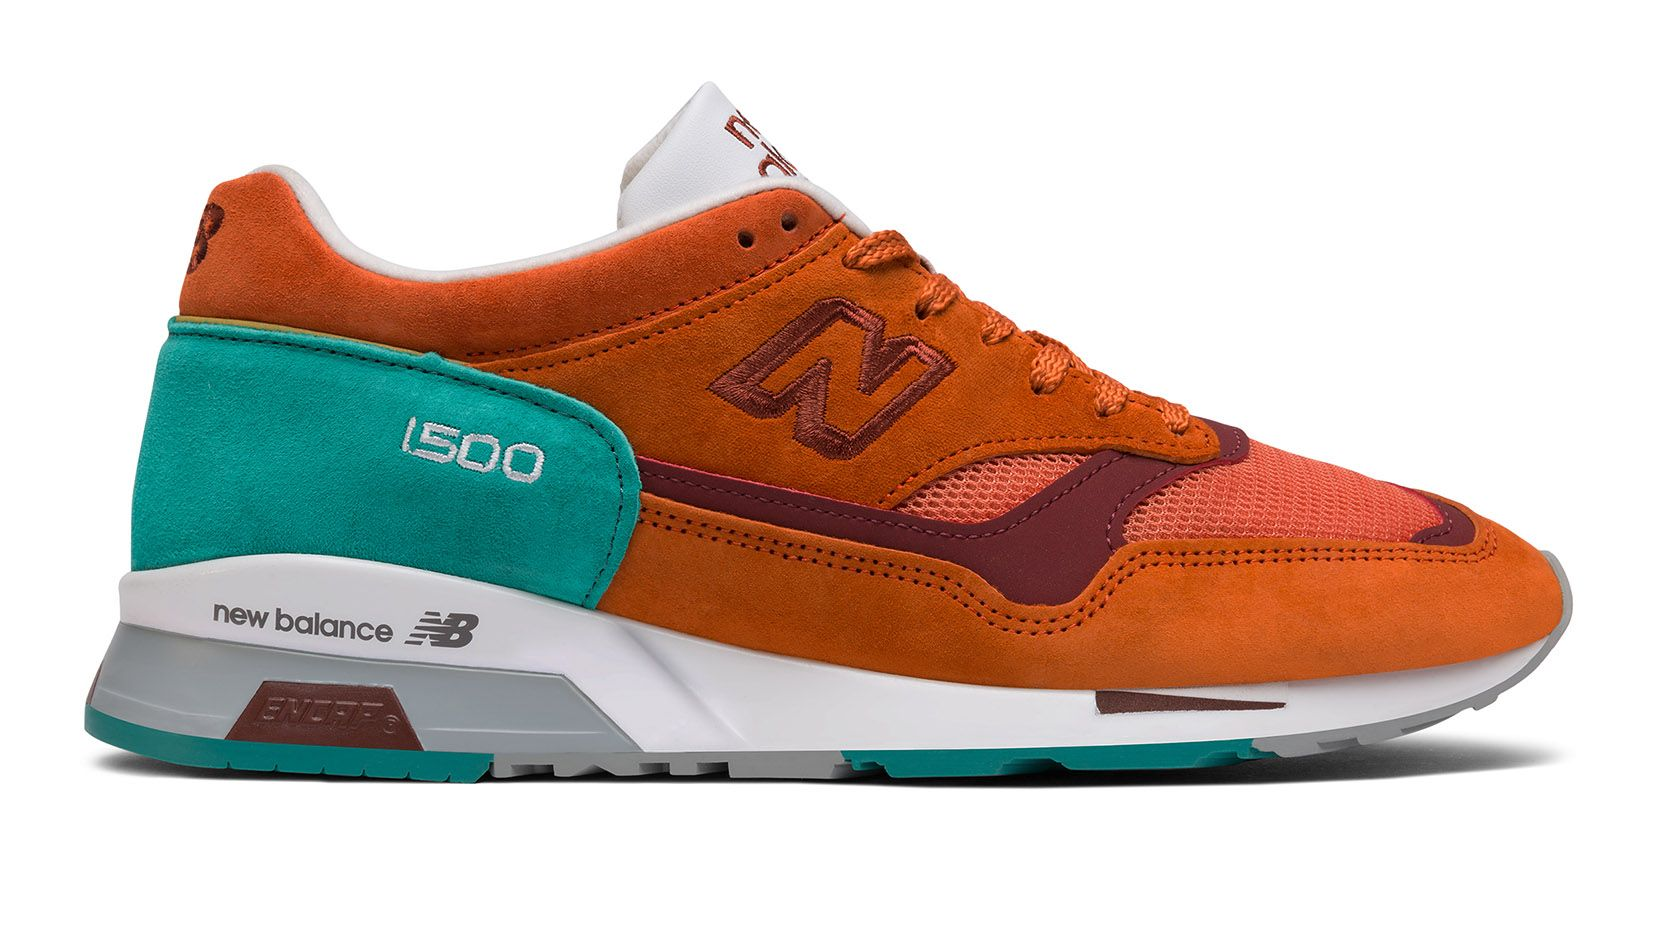 New Balance 1500 Coastal Cuisine